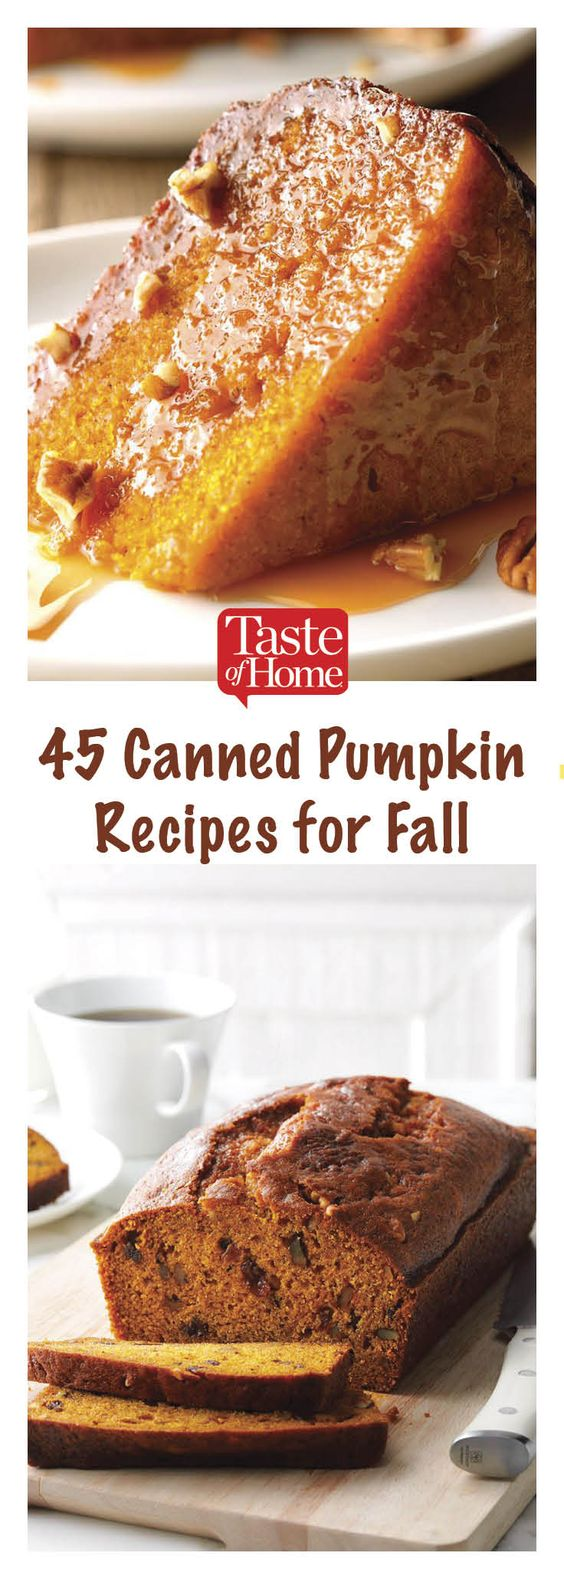 66 Fall Recipes That Use Canned Pumpkin